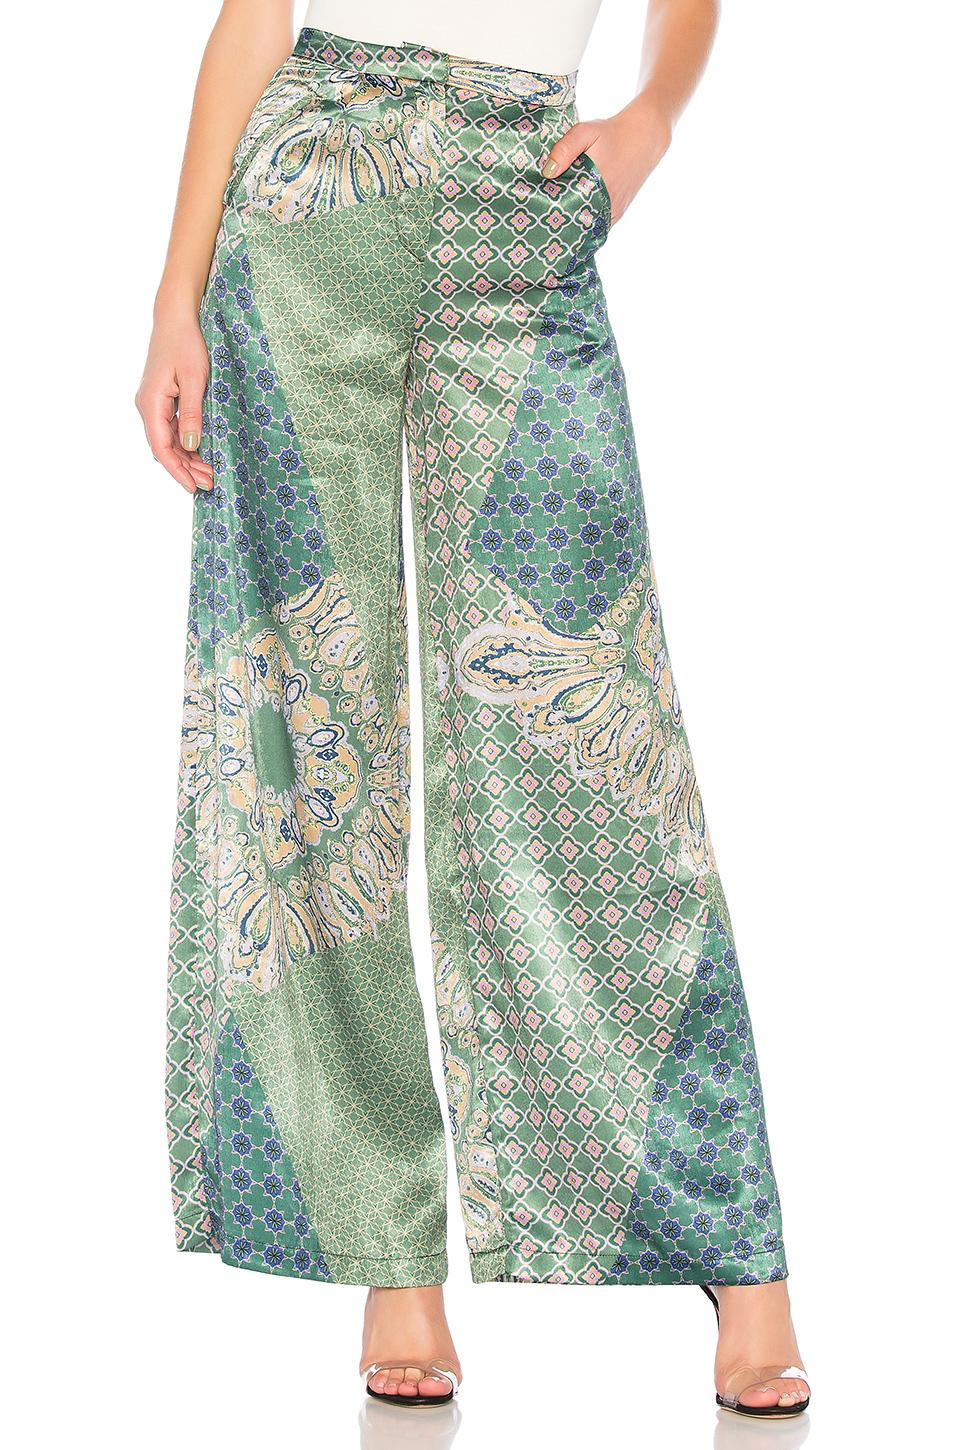 House Of Harlow 1960 X Revolve Des Pant In Moss Green Patchwork